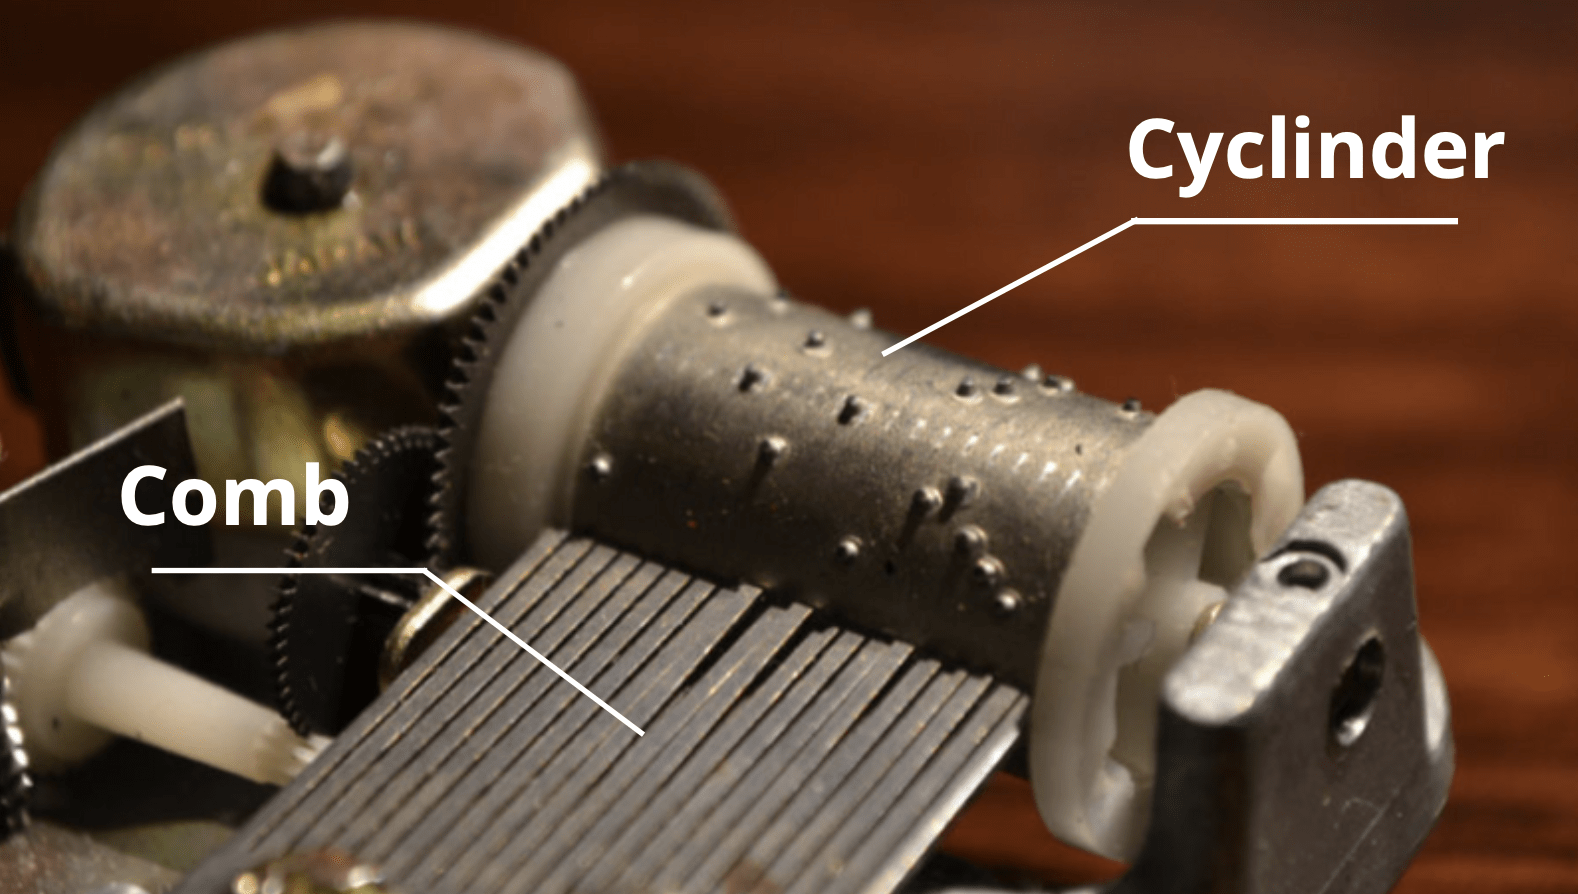 the close shot of a traditional music box cylinder and its comb